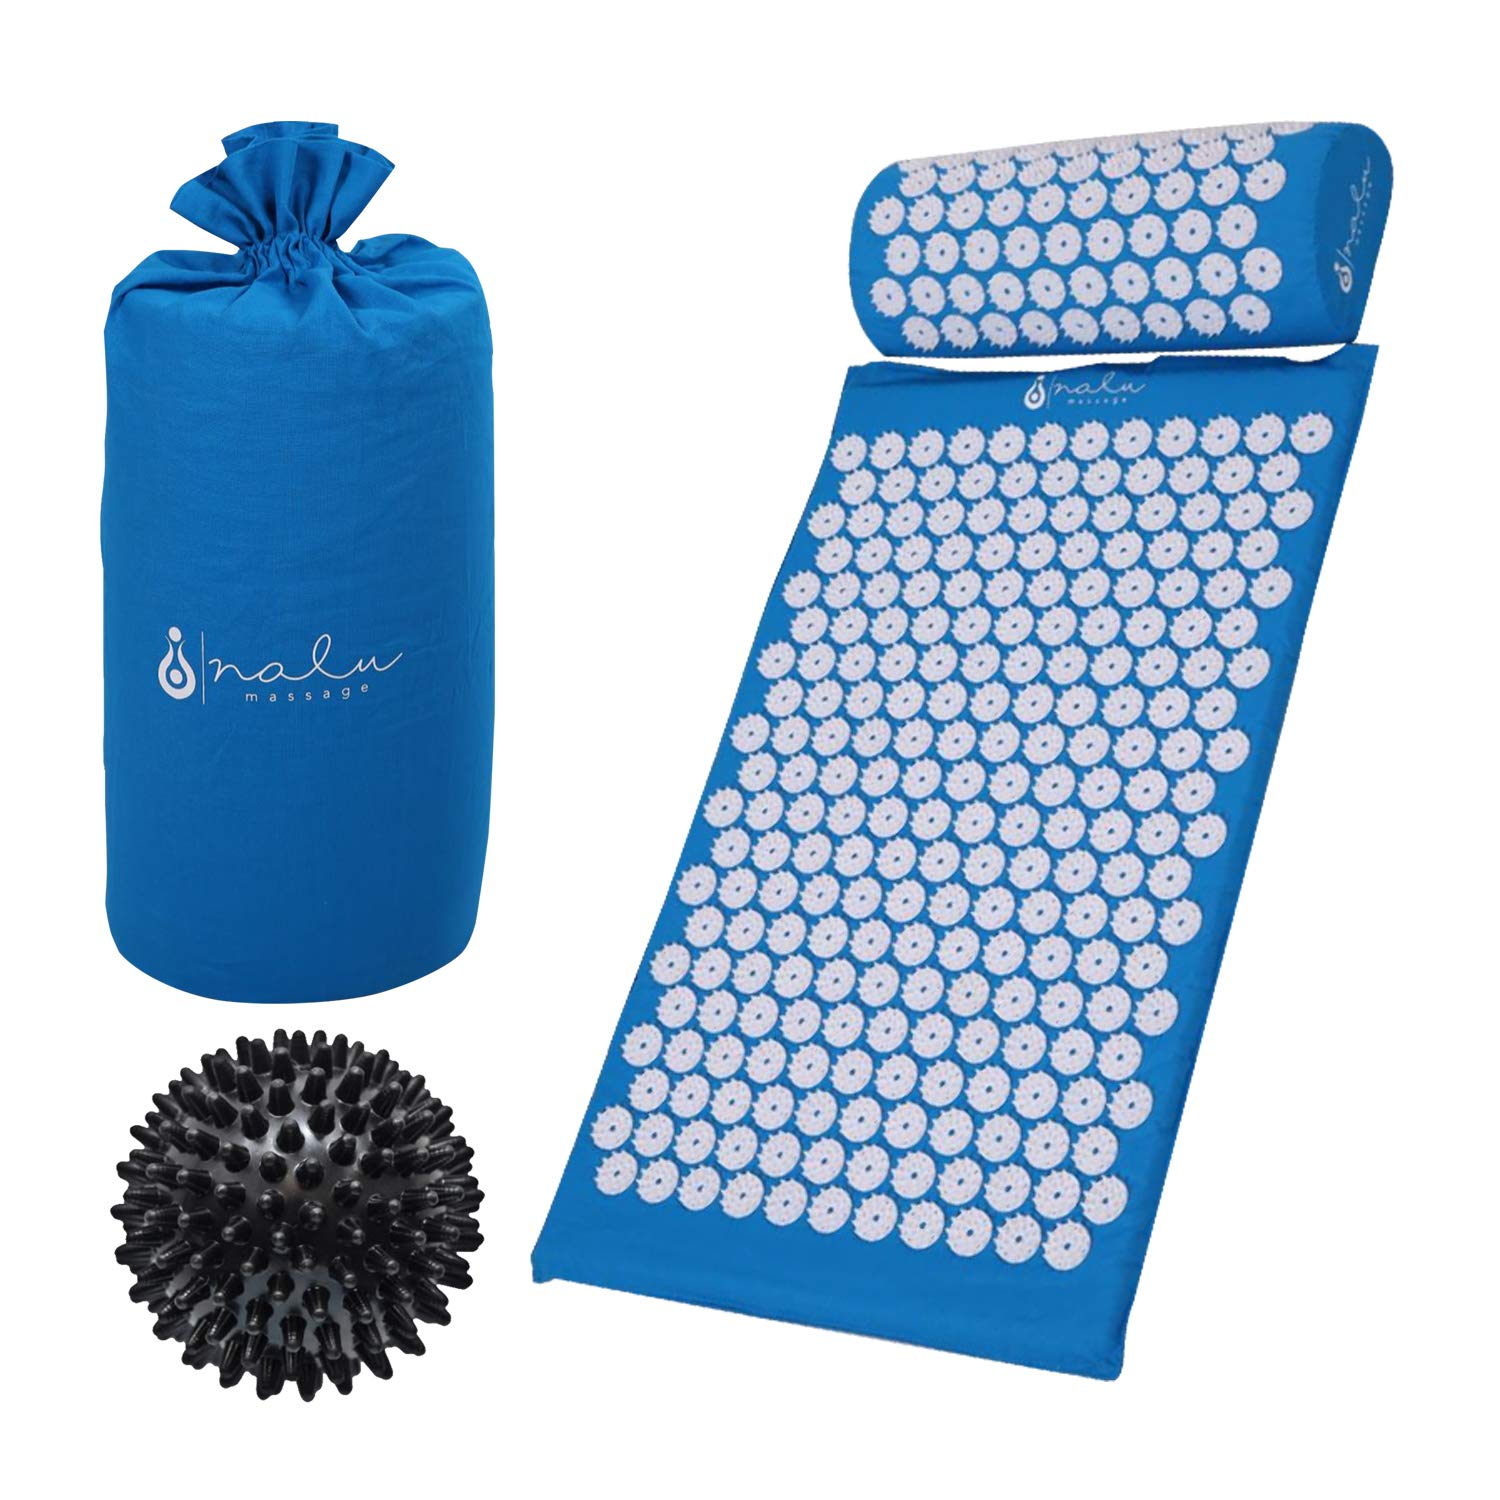 Acupressure Mat and Pillow Set + Spiky Reflexology Ball - Ebook and Wall Chart- for Sciatica, Chronic Back and Neck Pain, Fibromyalgia, Plantar Fasciitis and Stress Relief, Blue by Nalu Massage